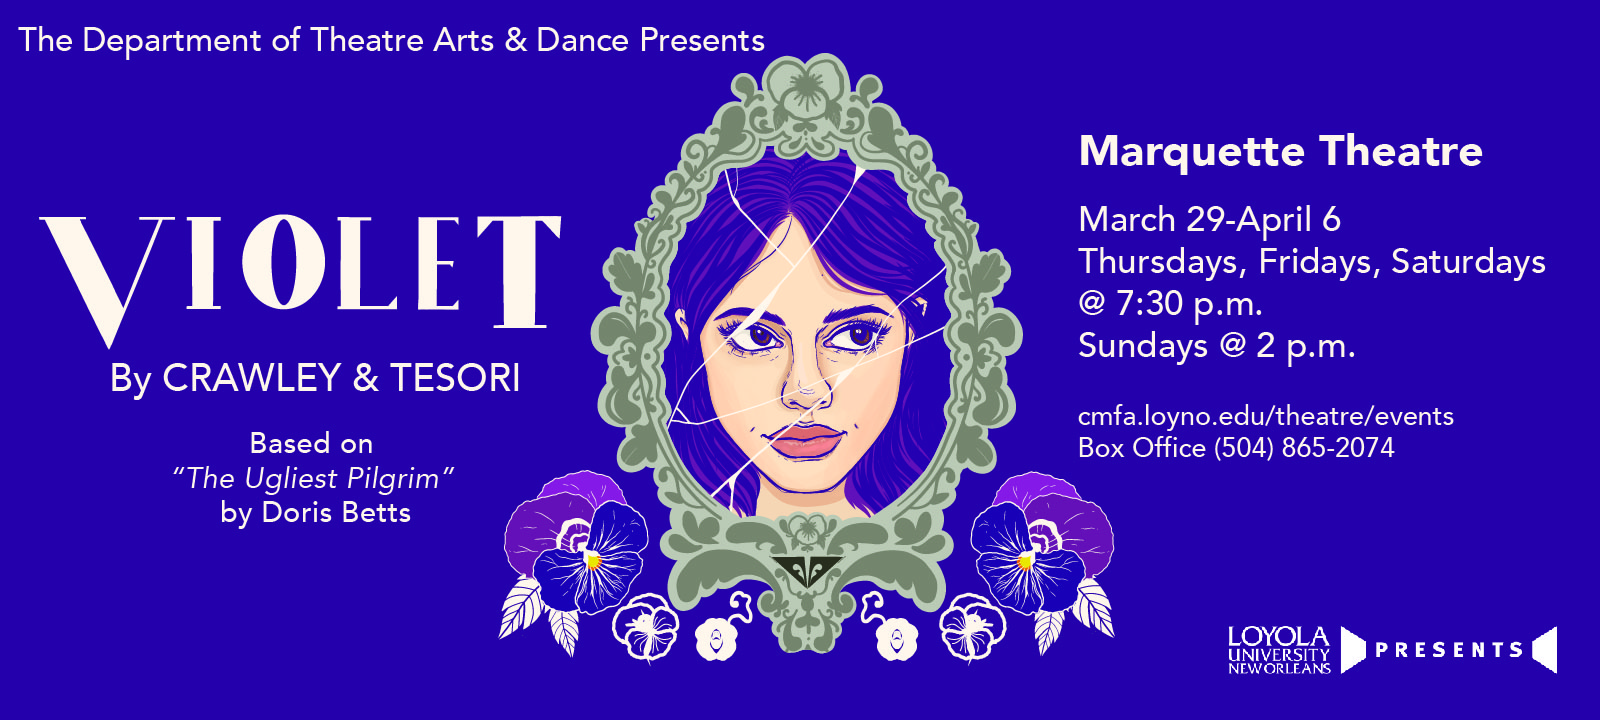 Loyola Department of Theatre Arts + Dance presents Violet, opening March 29th. Buy tickets today!